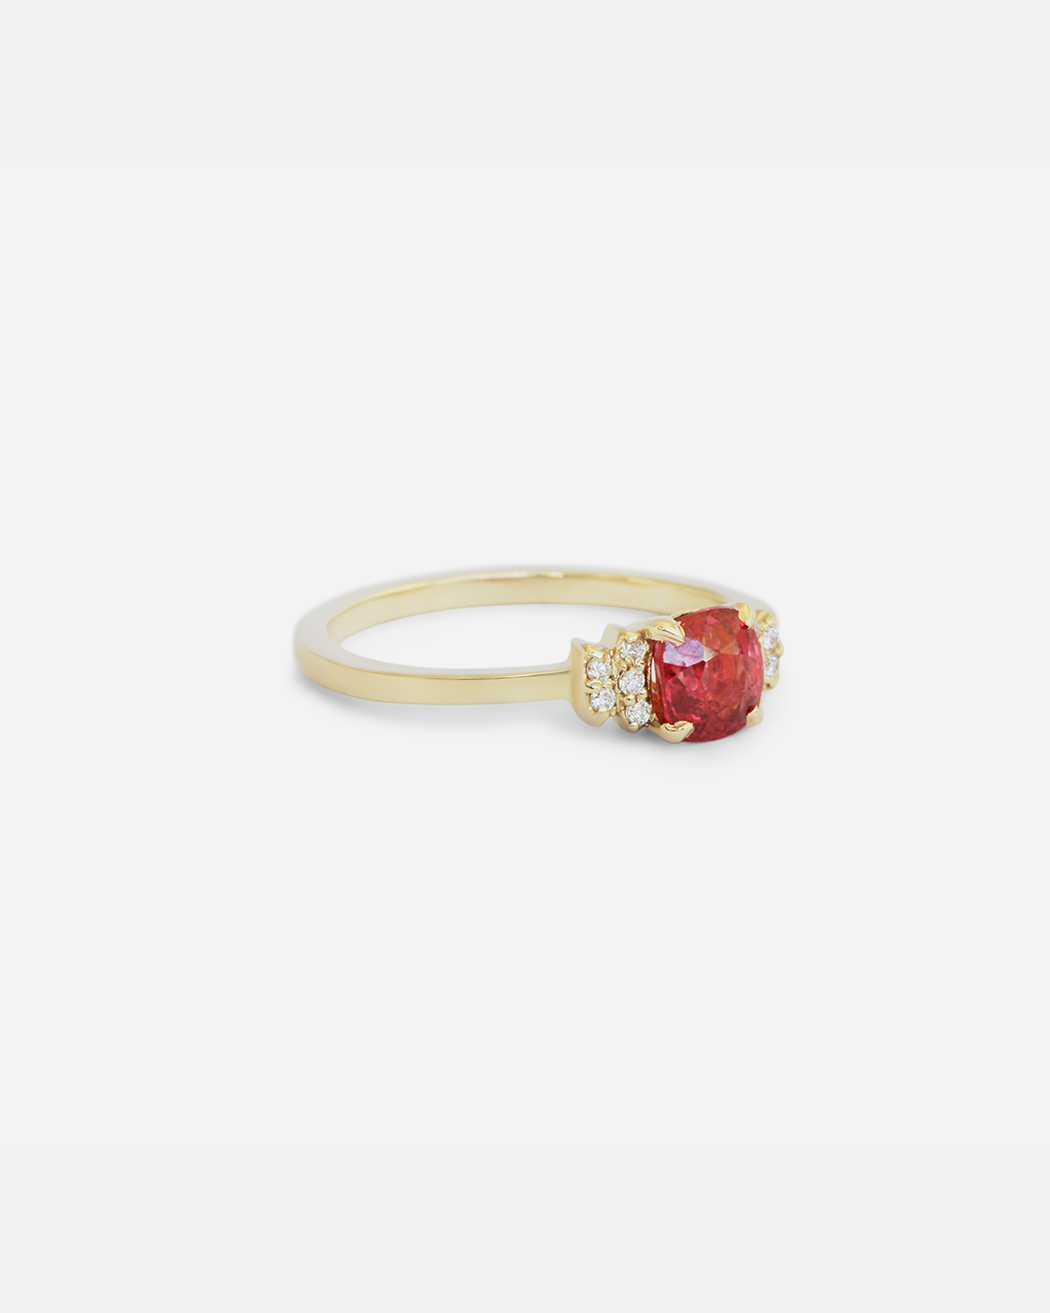 Diamond Bow Ring / Red Spinel by vendor - ENGAGEMENT - Fine Jewelry Studio in Williamsburg, Brooklyn, NYC